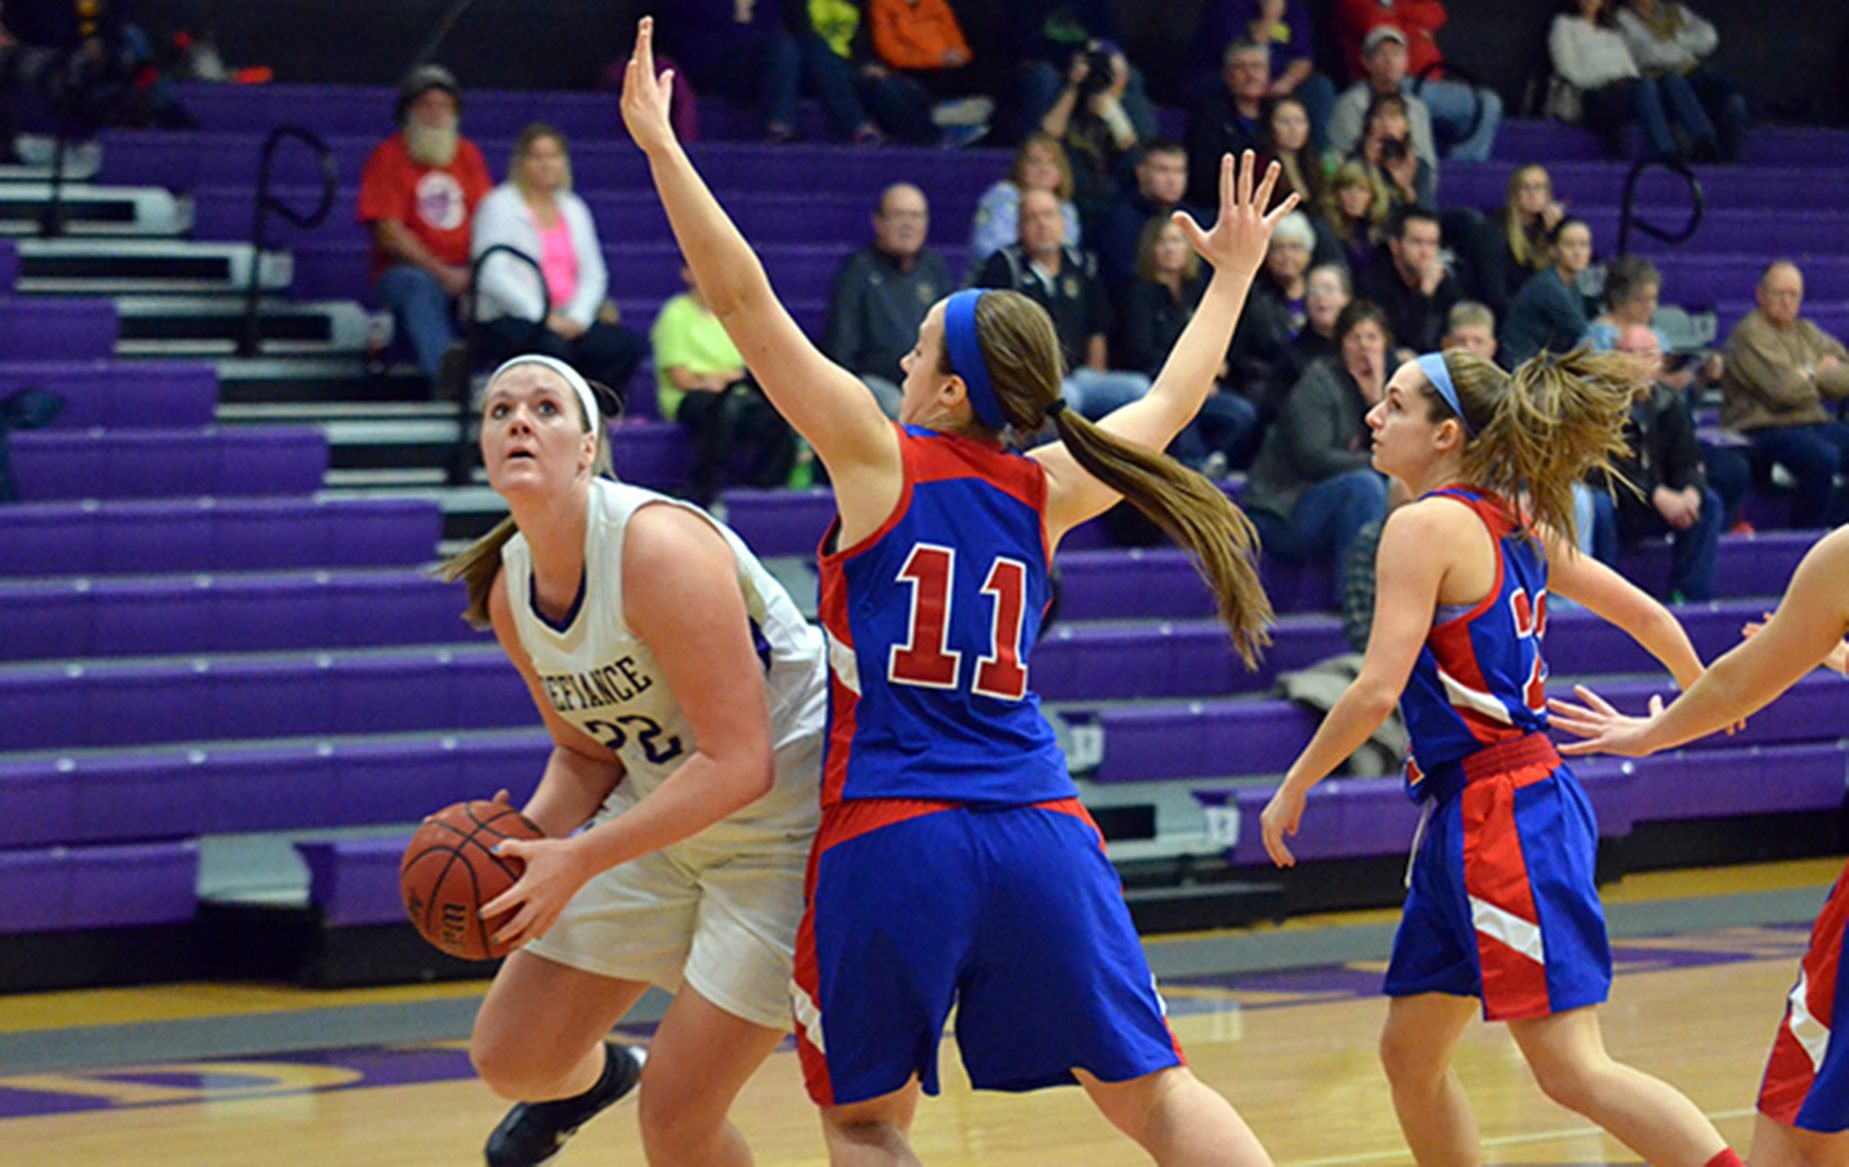 Tietje Scores 24 in Loss to Bluffton